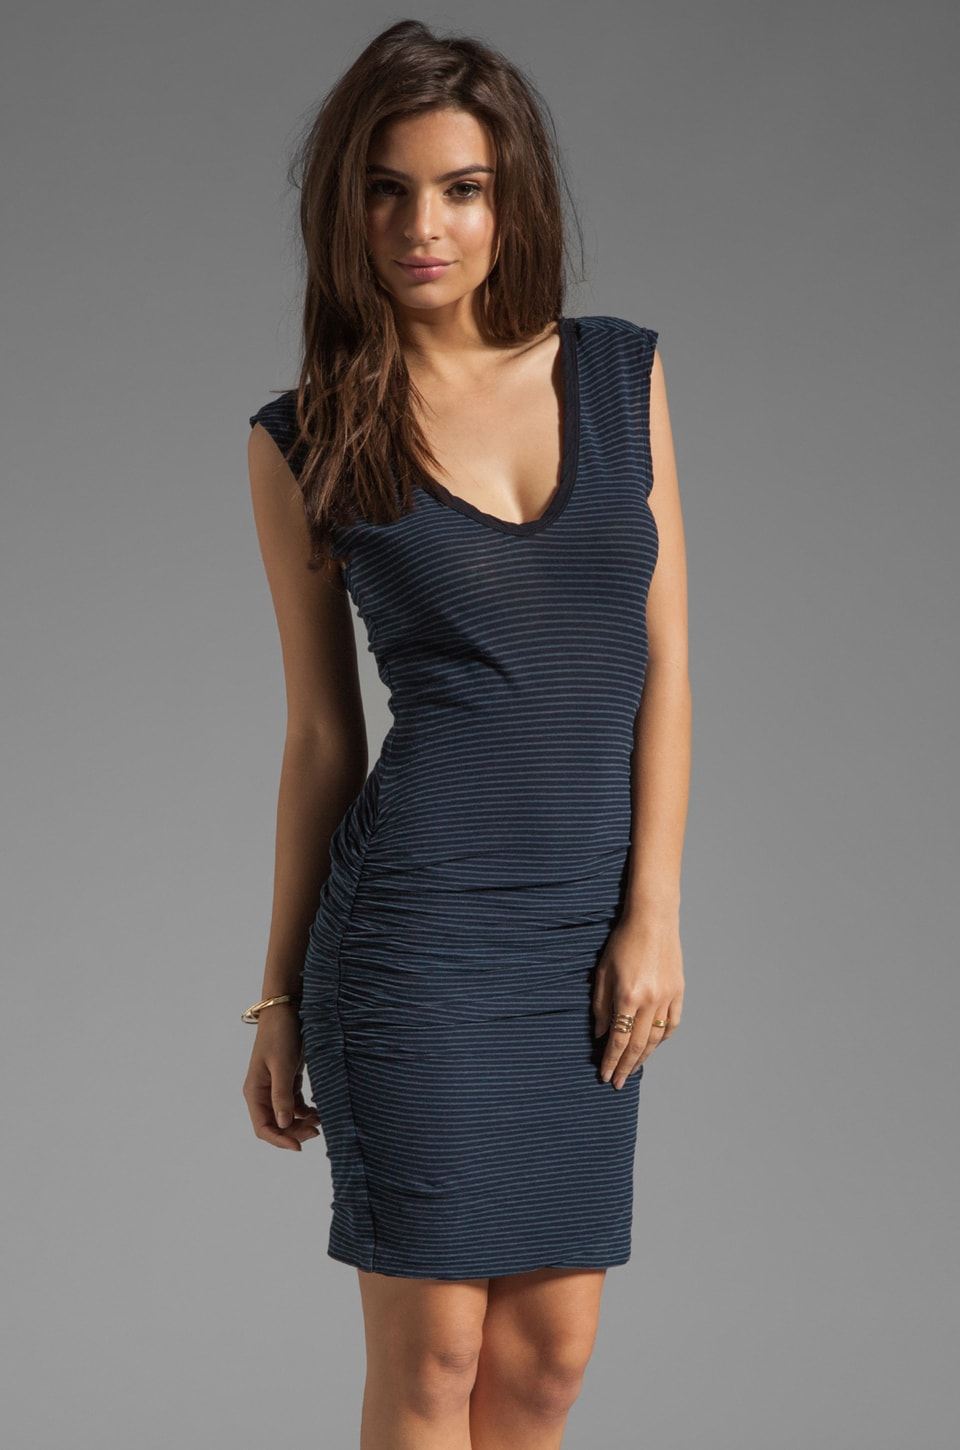 James Perse Stripe Double V Dress in Navy/Deep